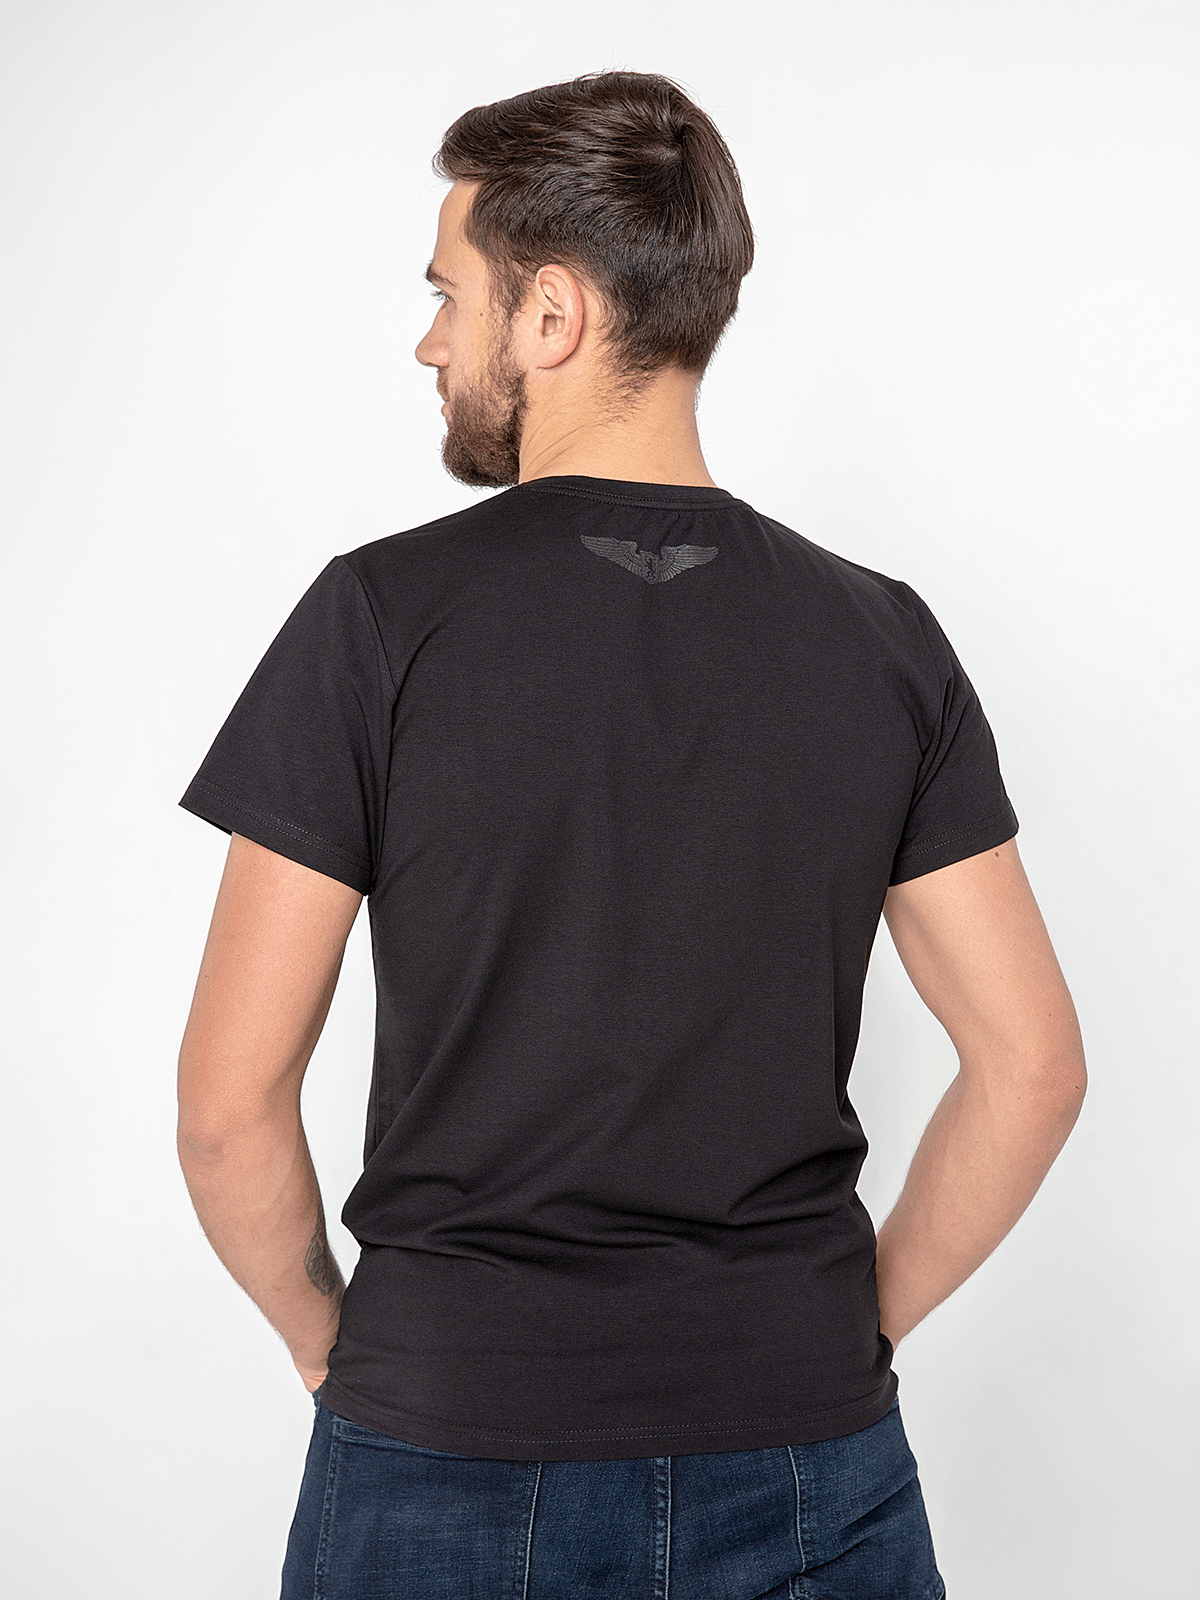 Men's T-Shirt Fly Cabin. Color black.  Material: 95% cotton, 5% elastane.